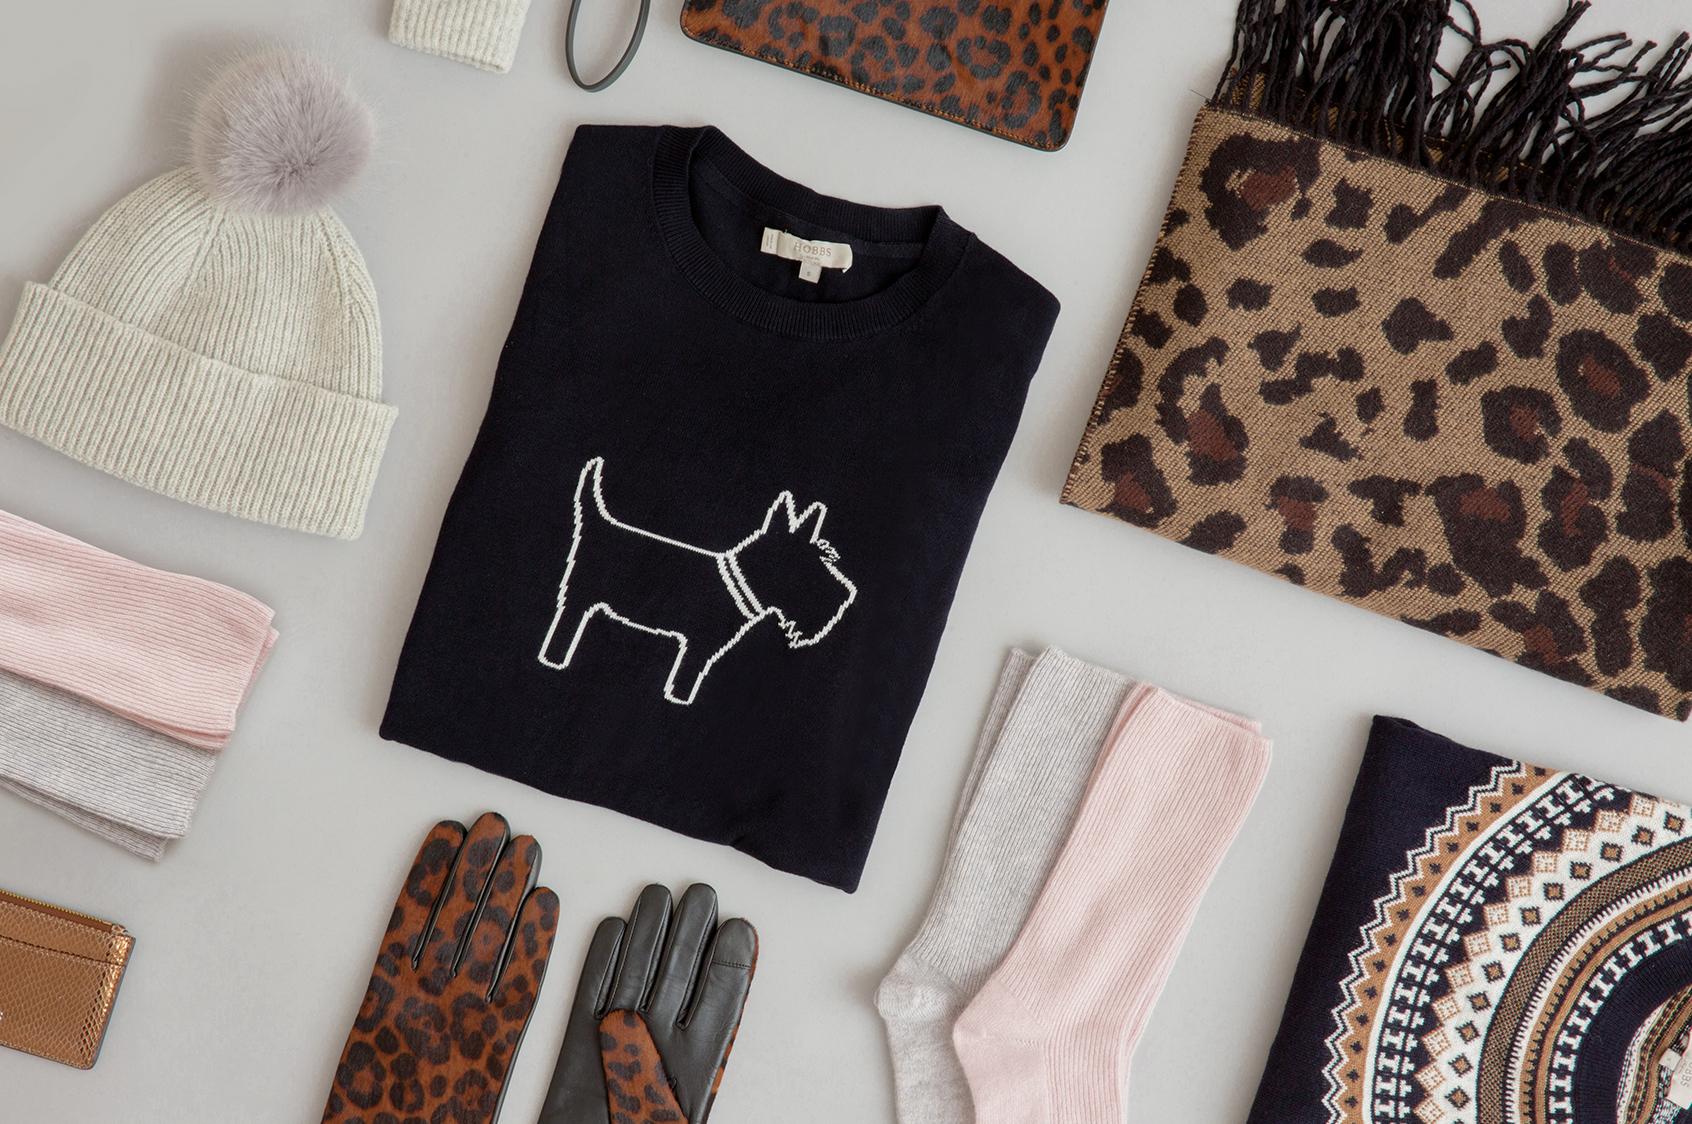 A selection of Christmas gifts including a novelty knit, leopard print scarf and gloves.